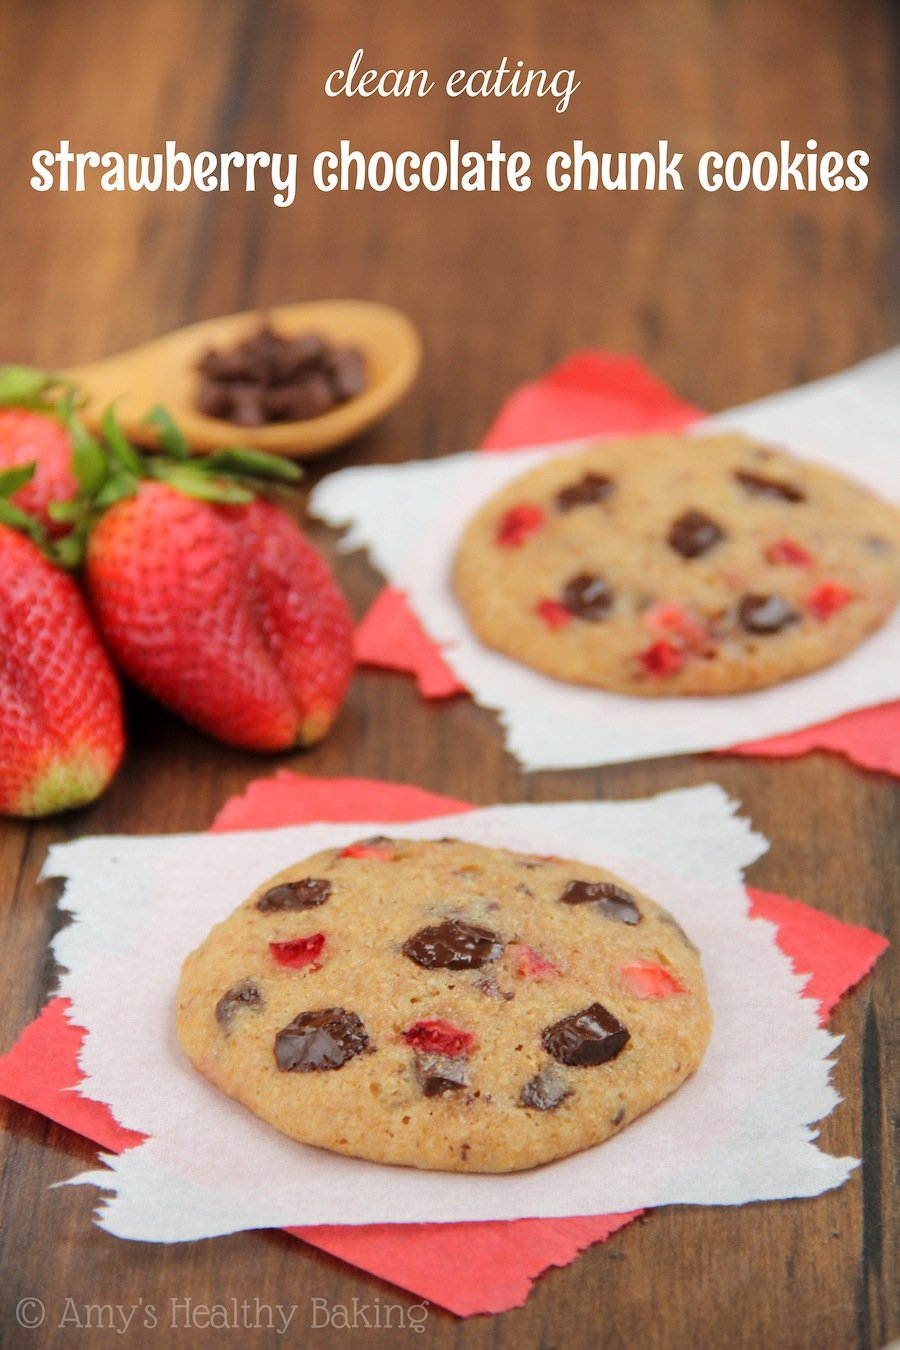 Strawberry Chocolate Chunk Cookies